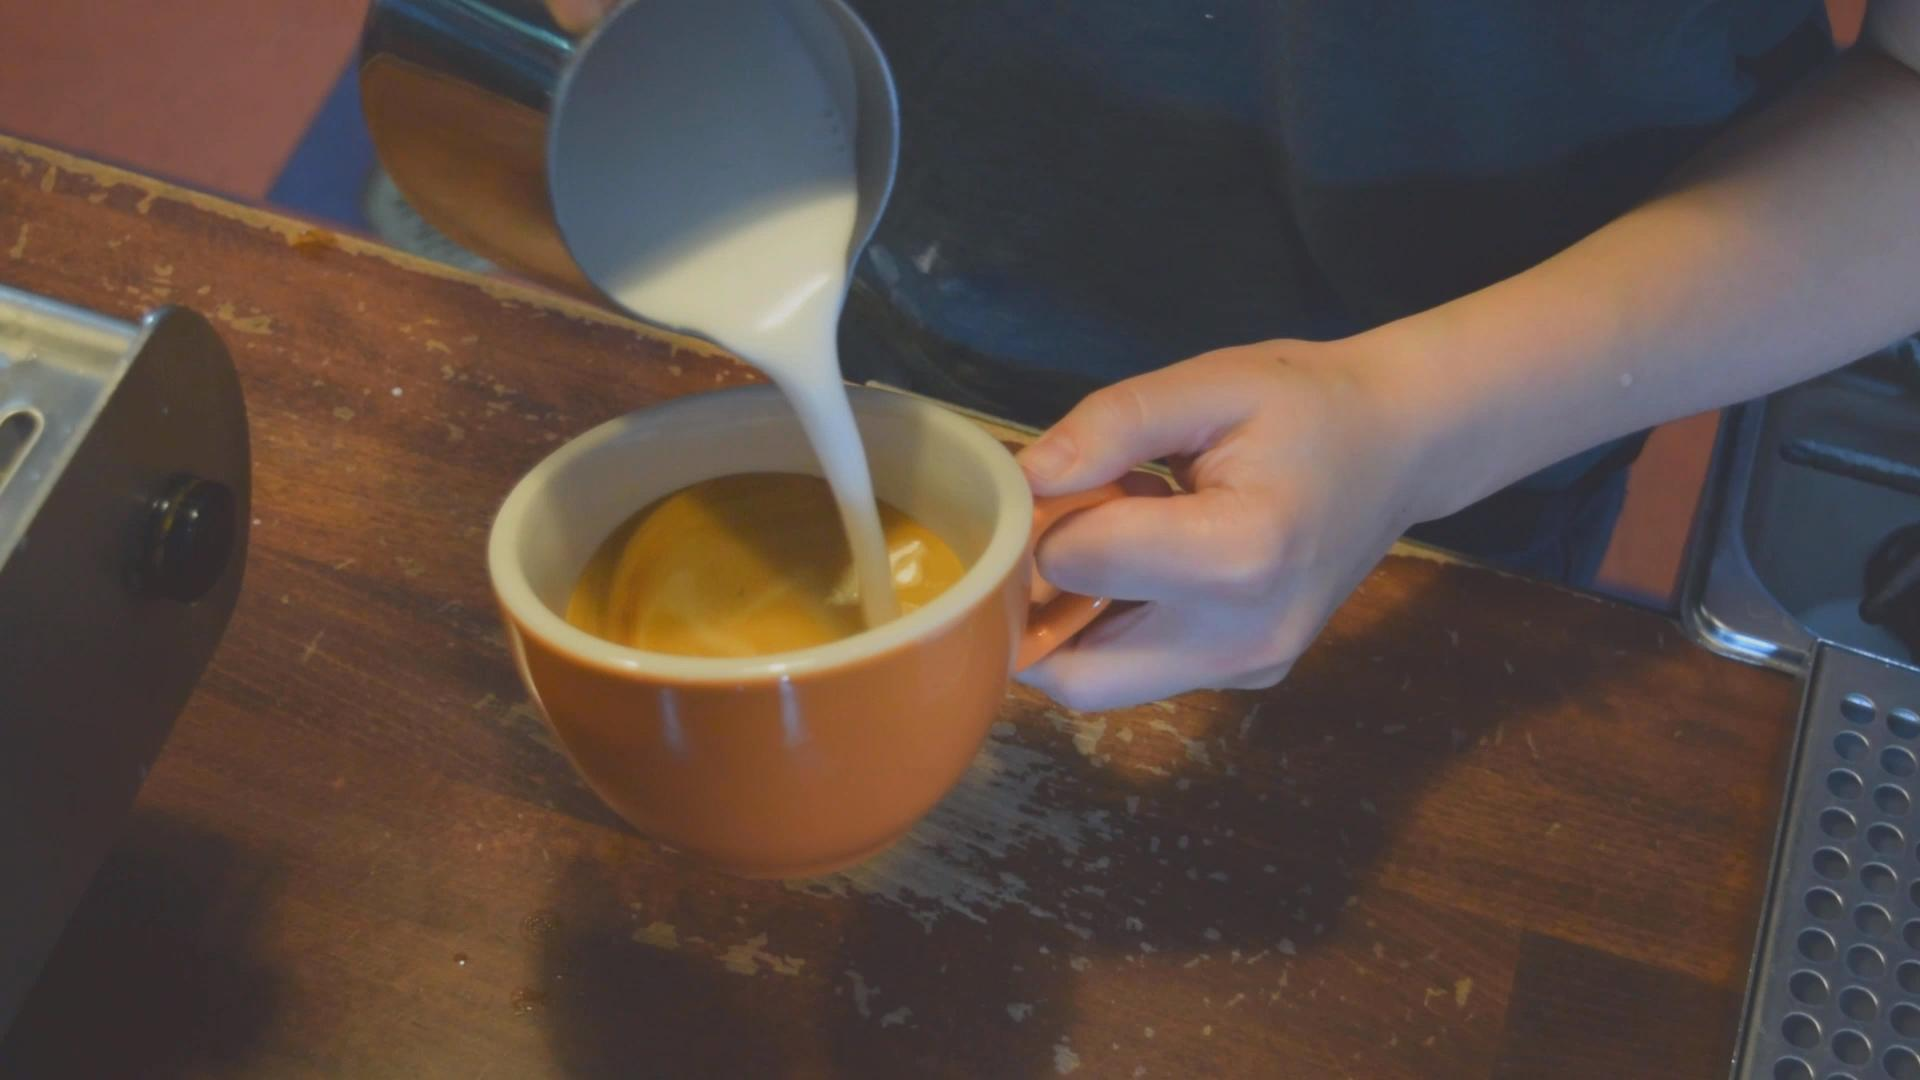 barista pouring milk into coffee in an orange coffee cup